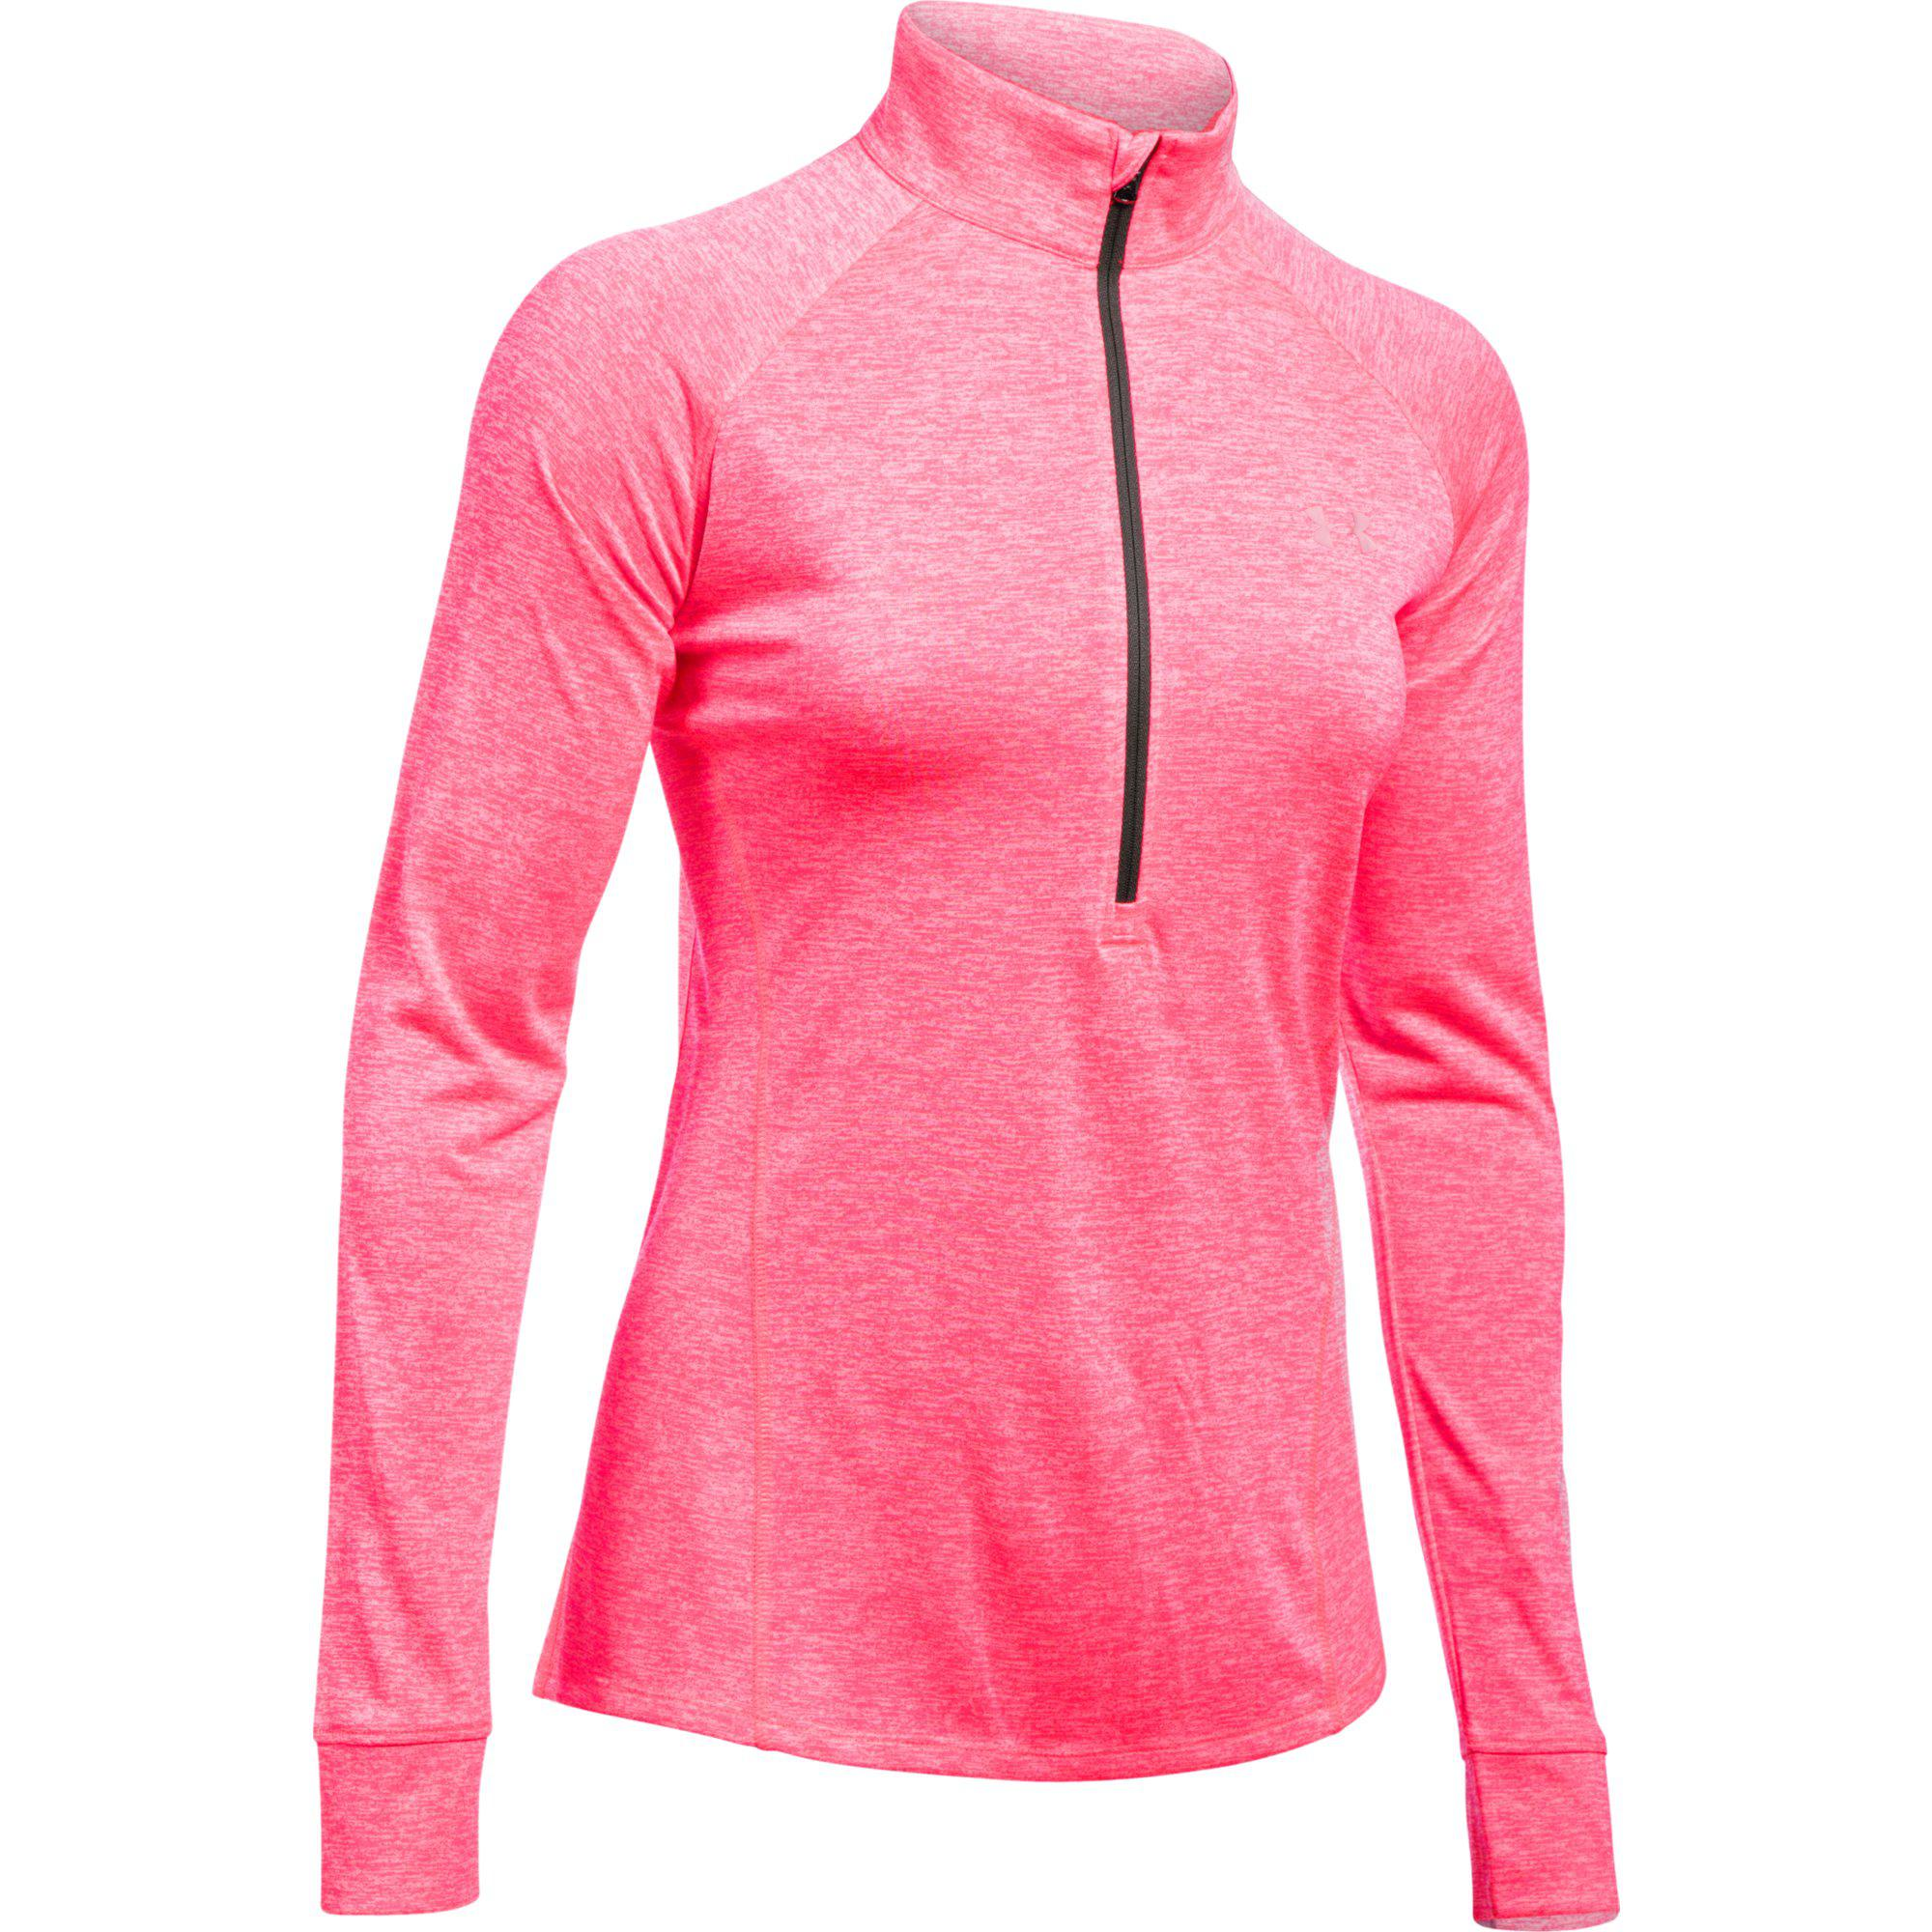 Persona australiana inversión verano  Under Armour Womens Tech 1/2 Zip Top - Pink Shock - Tennisnuts.com